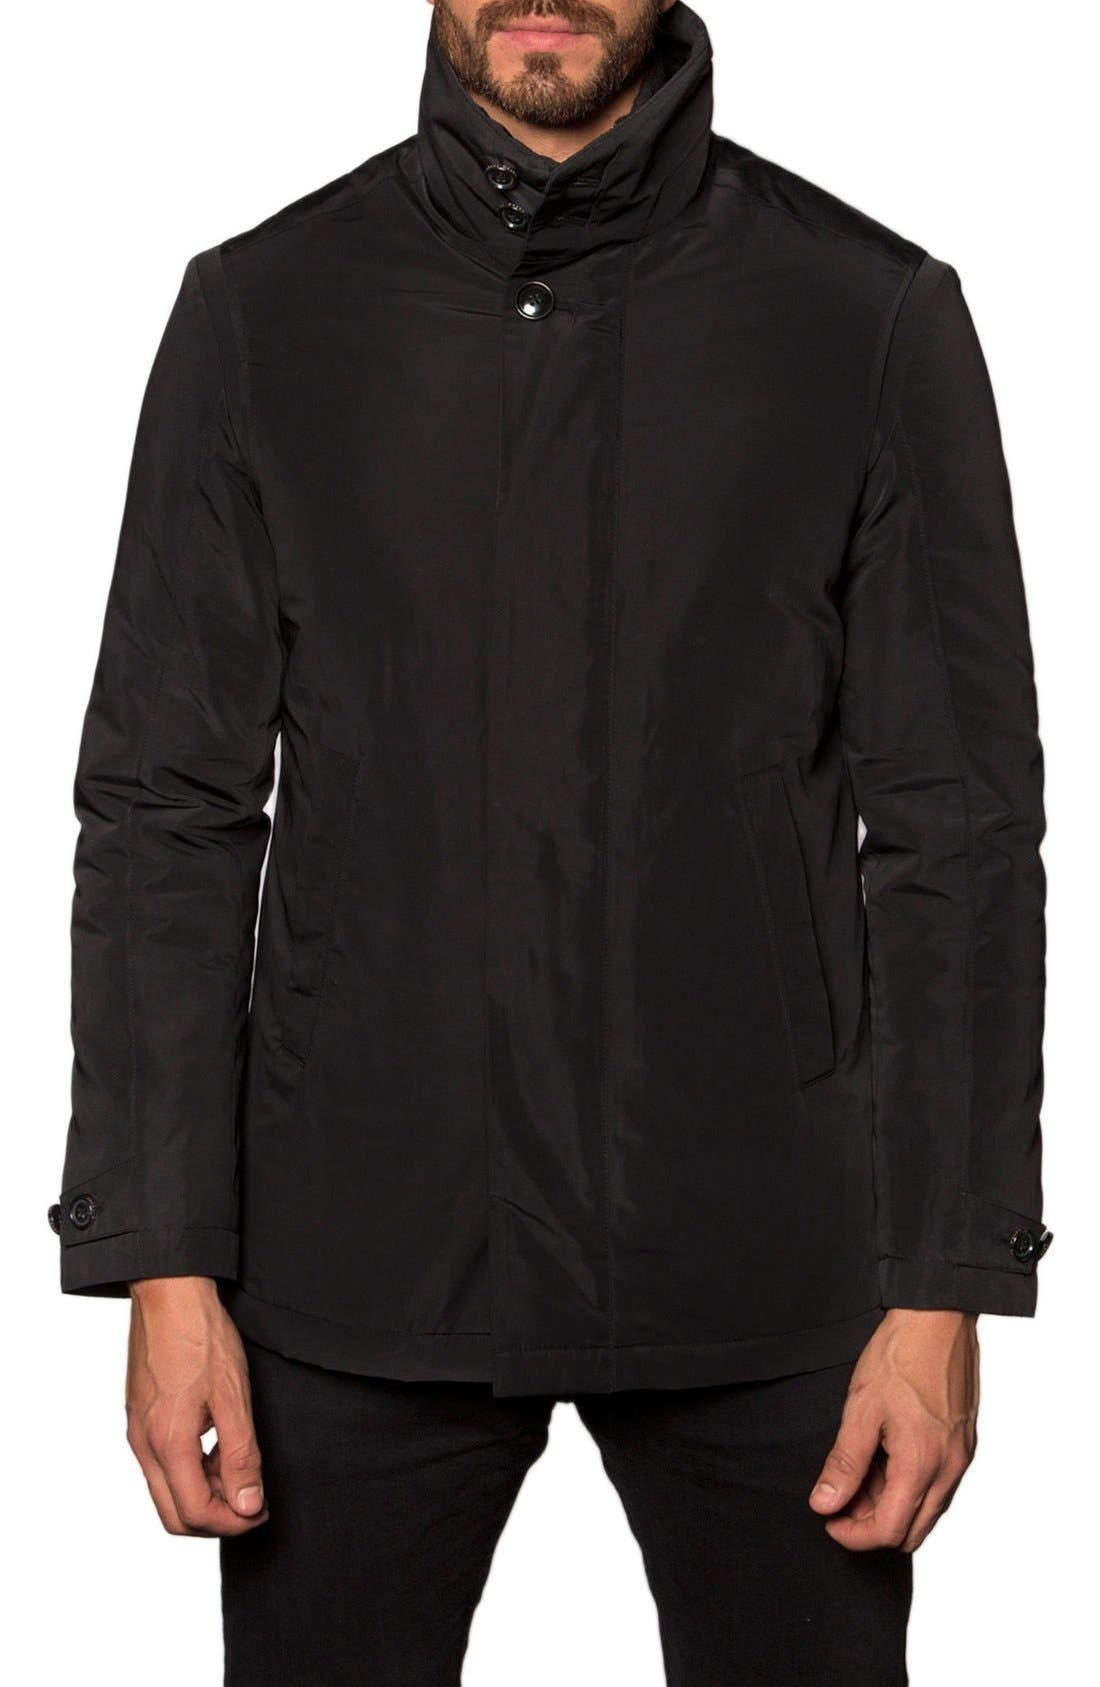 Alternate Image 1 Selected - Jared Lang Rome Insulated Jacket